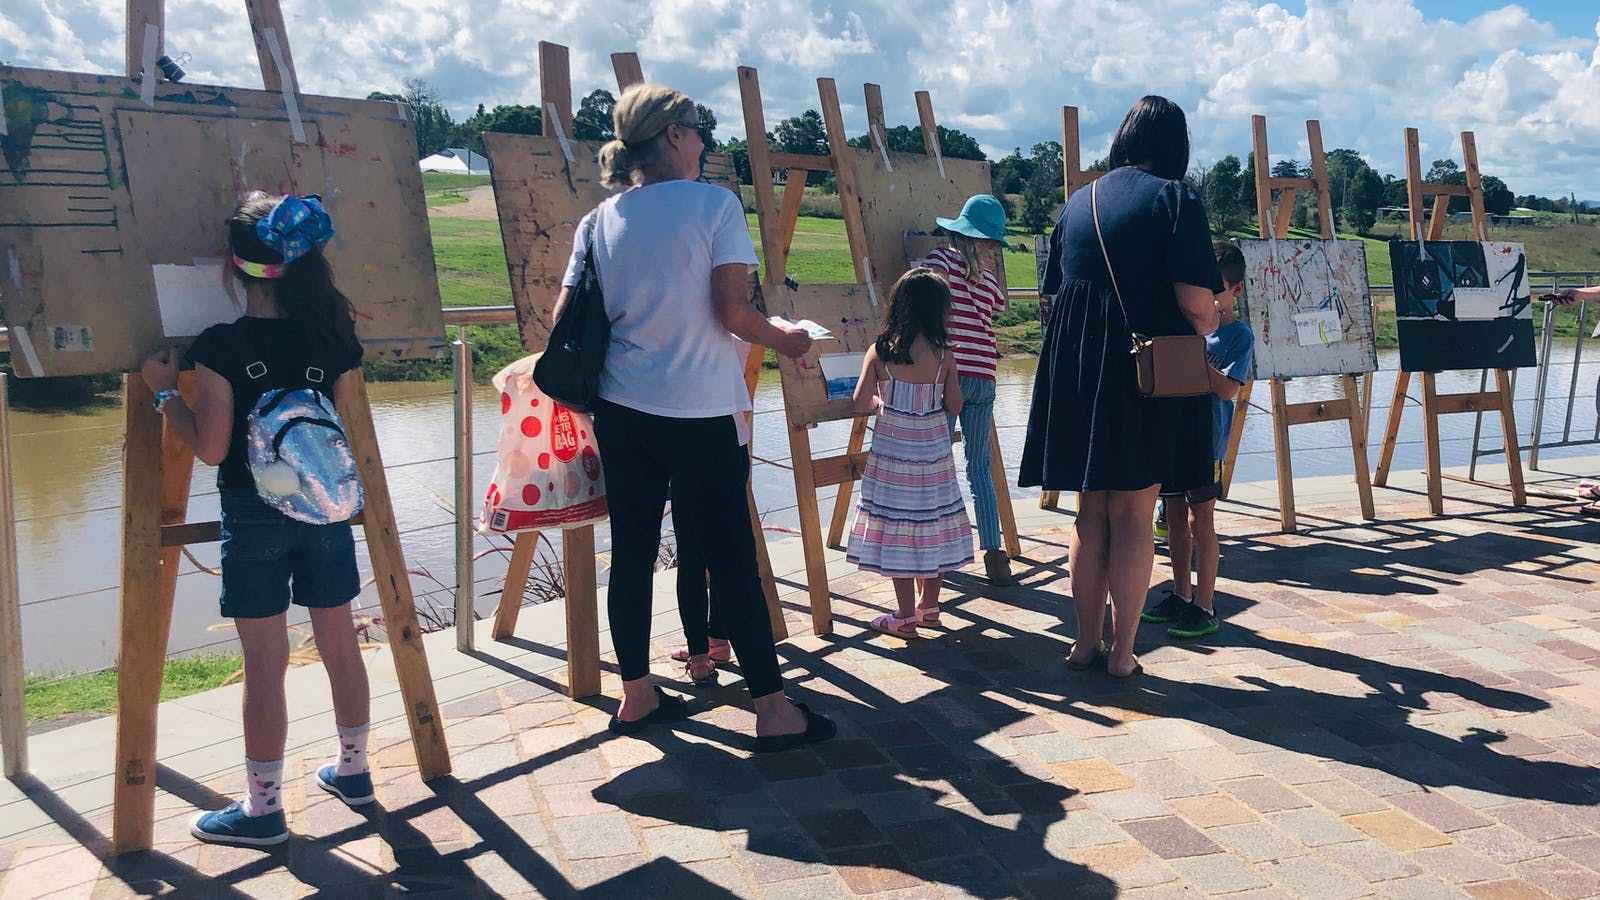 Free Art by The River